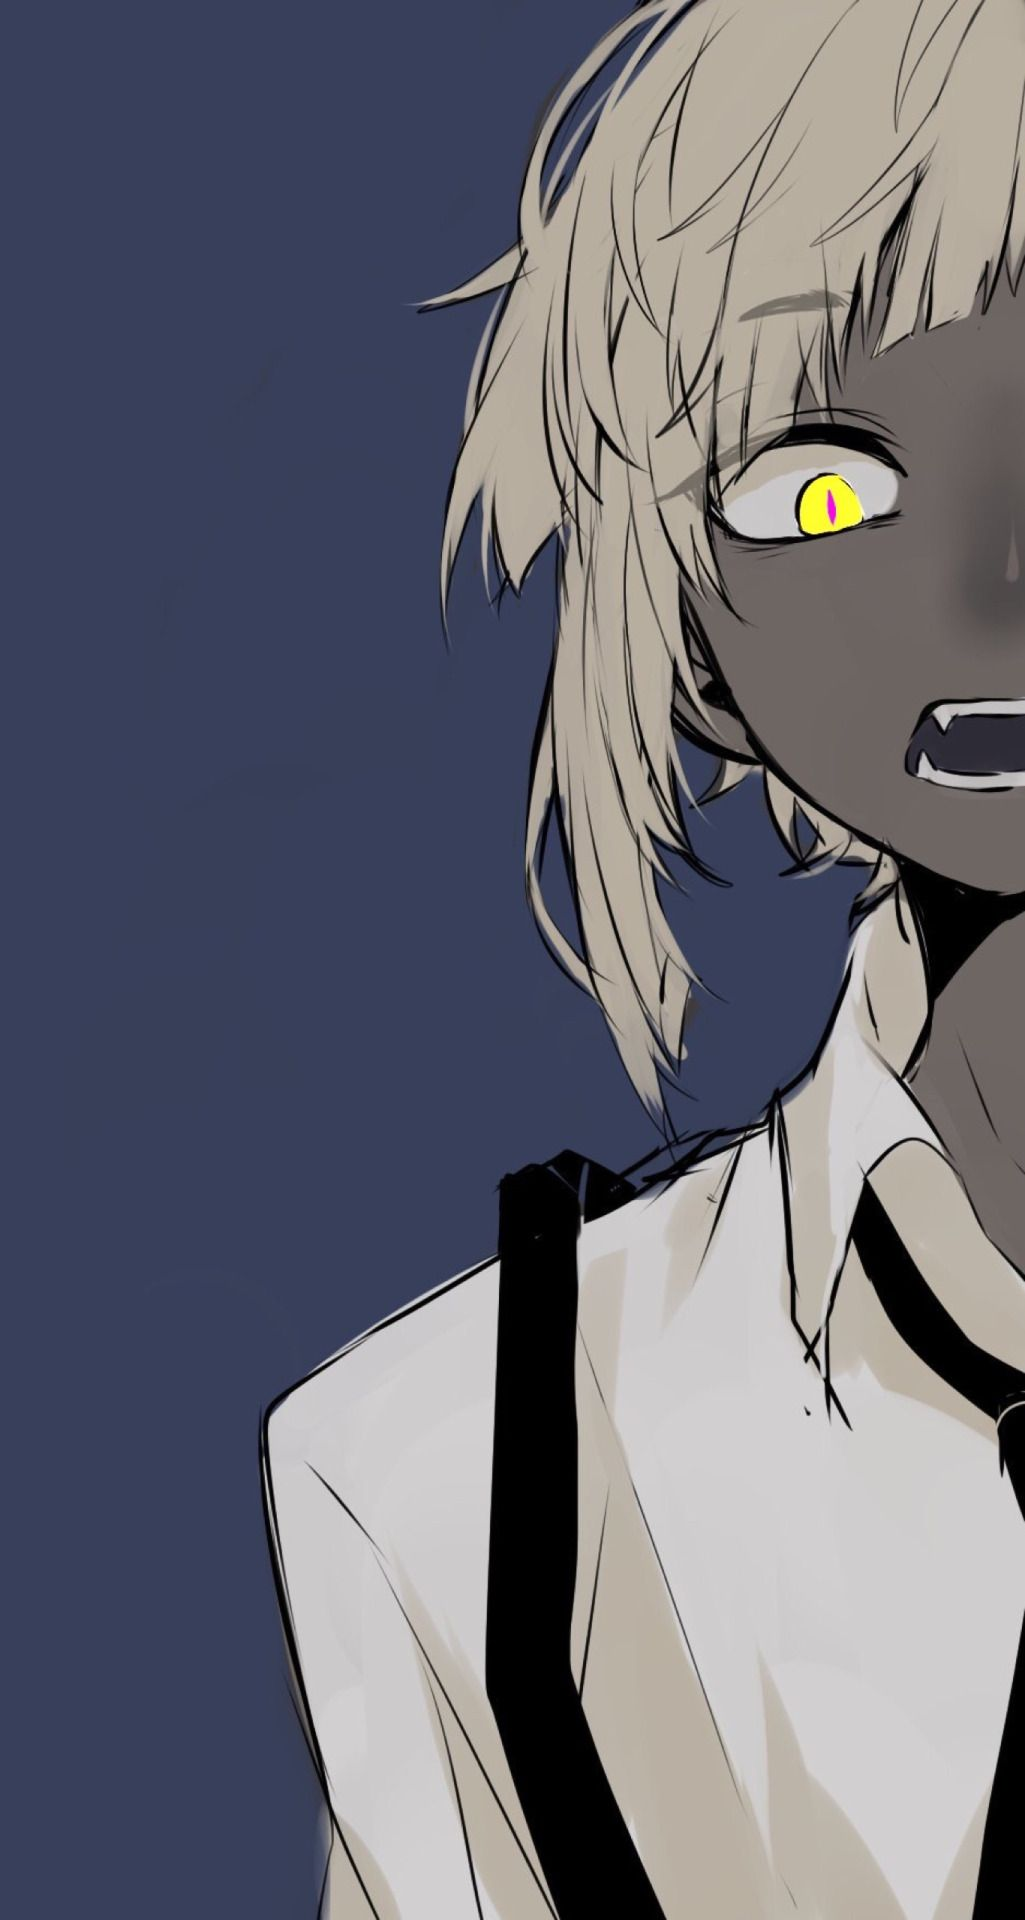 Atsushi Bungou Stray Dogs[ I haven't watched Bungou Stray